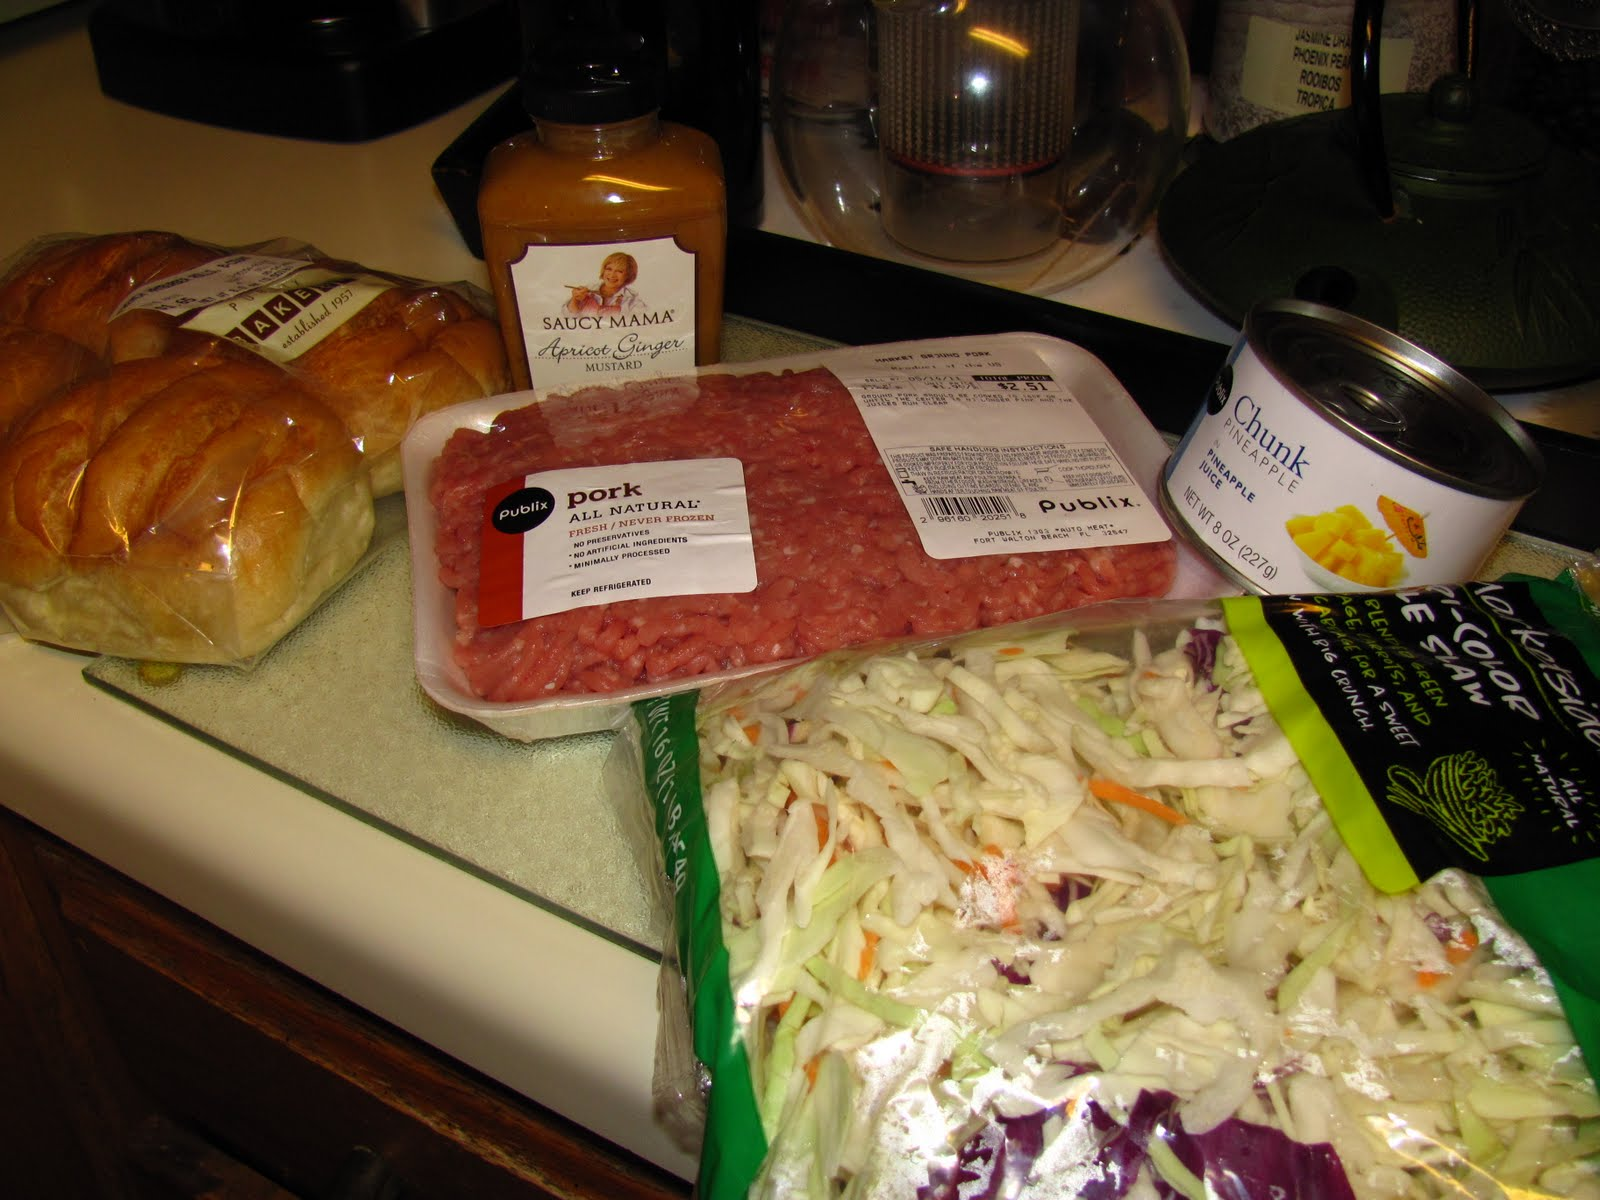 ... Food: ~Saucy Mama Apricot & Ginger Pork Burgers with Pineapple Slaw